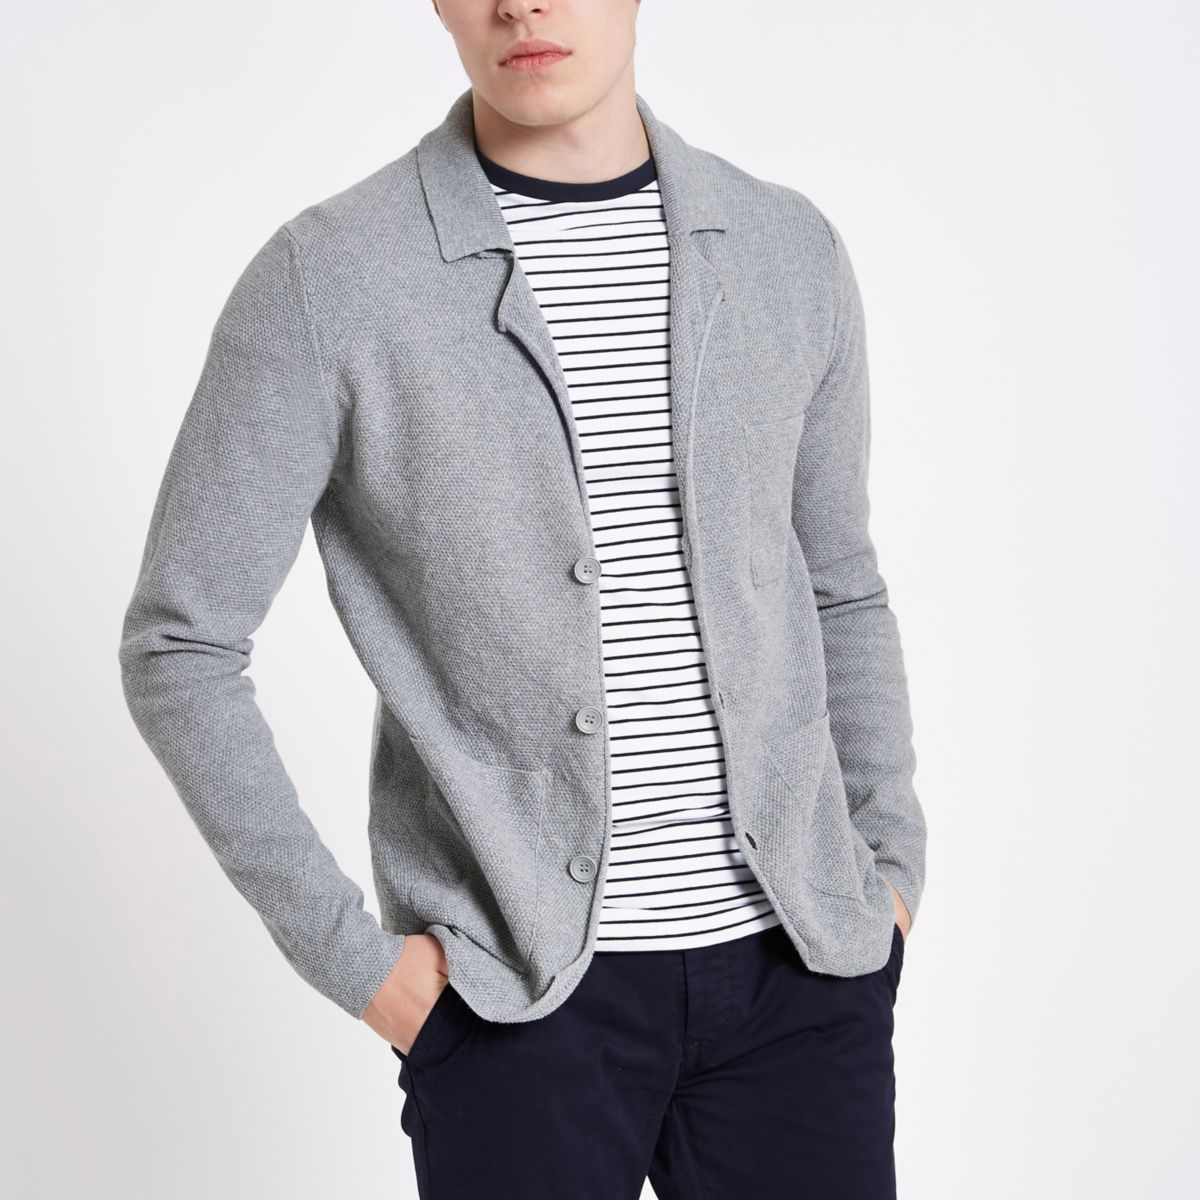 River Island Mens Only and Sons Grey knit cardigan Only & Sons